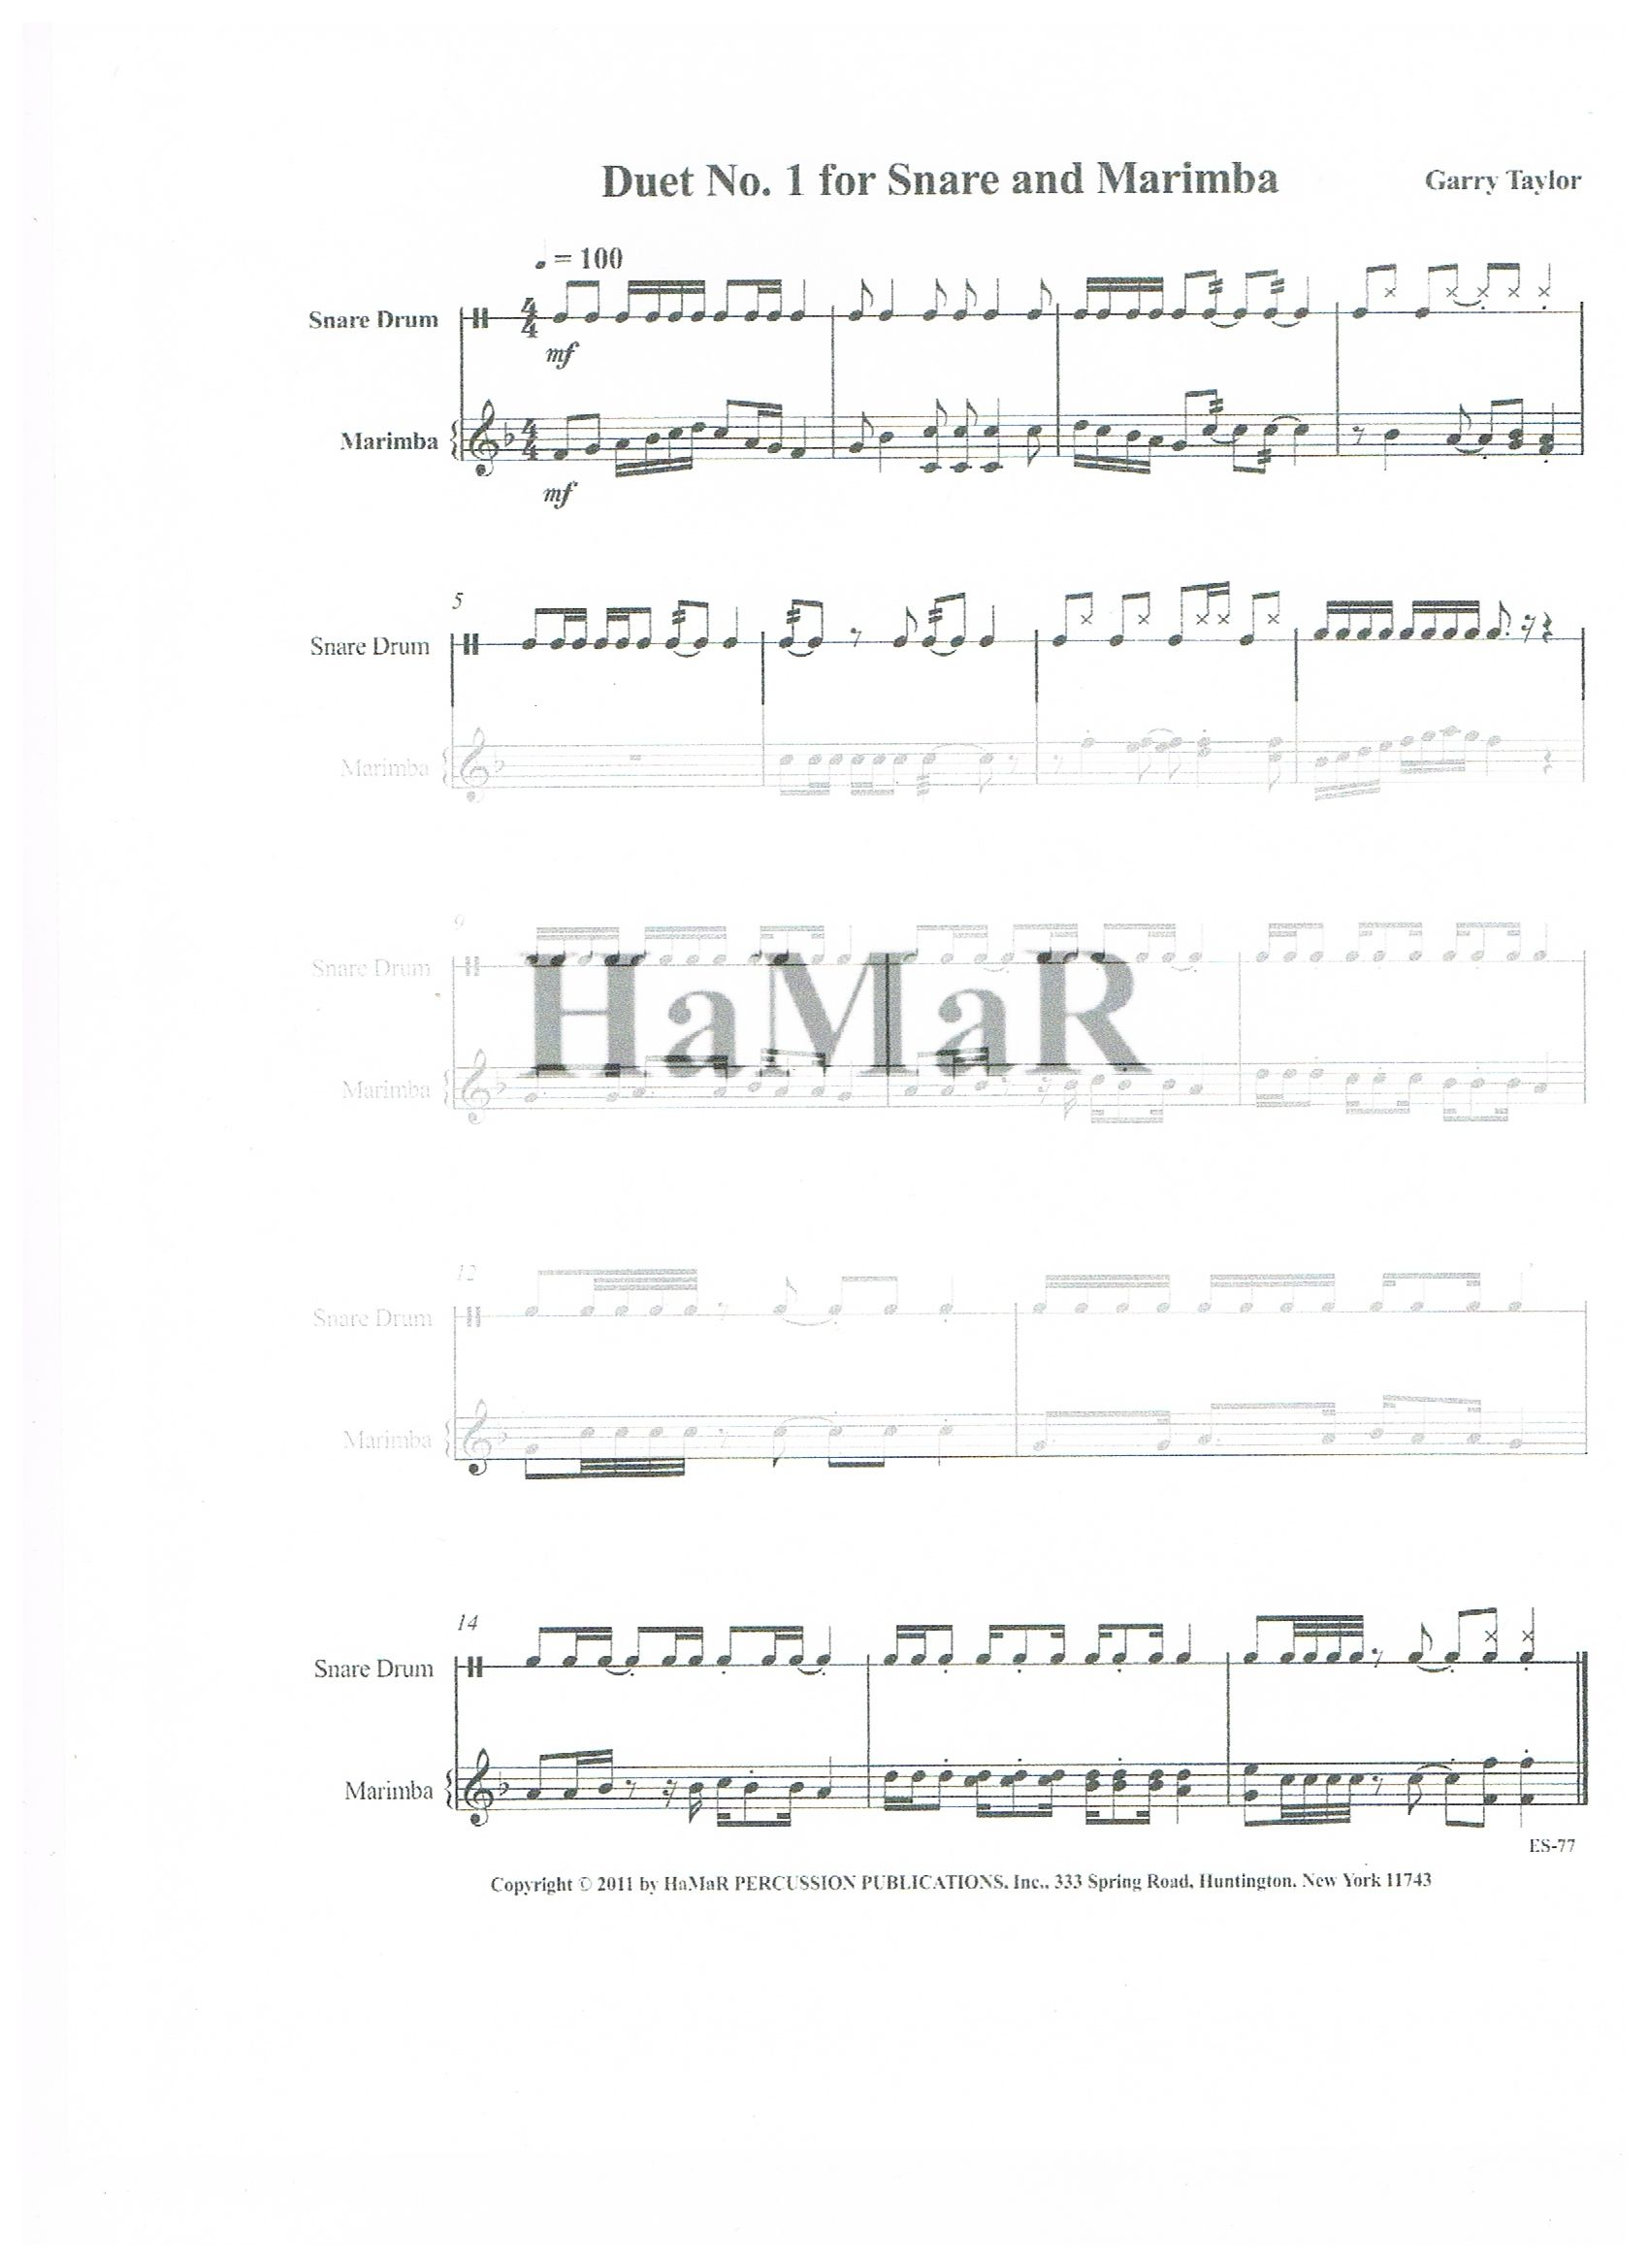 Duet No  1 for Snare and Marimba - HaMaR PERCUSSION PUBLICATIONS